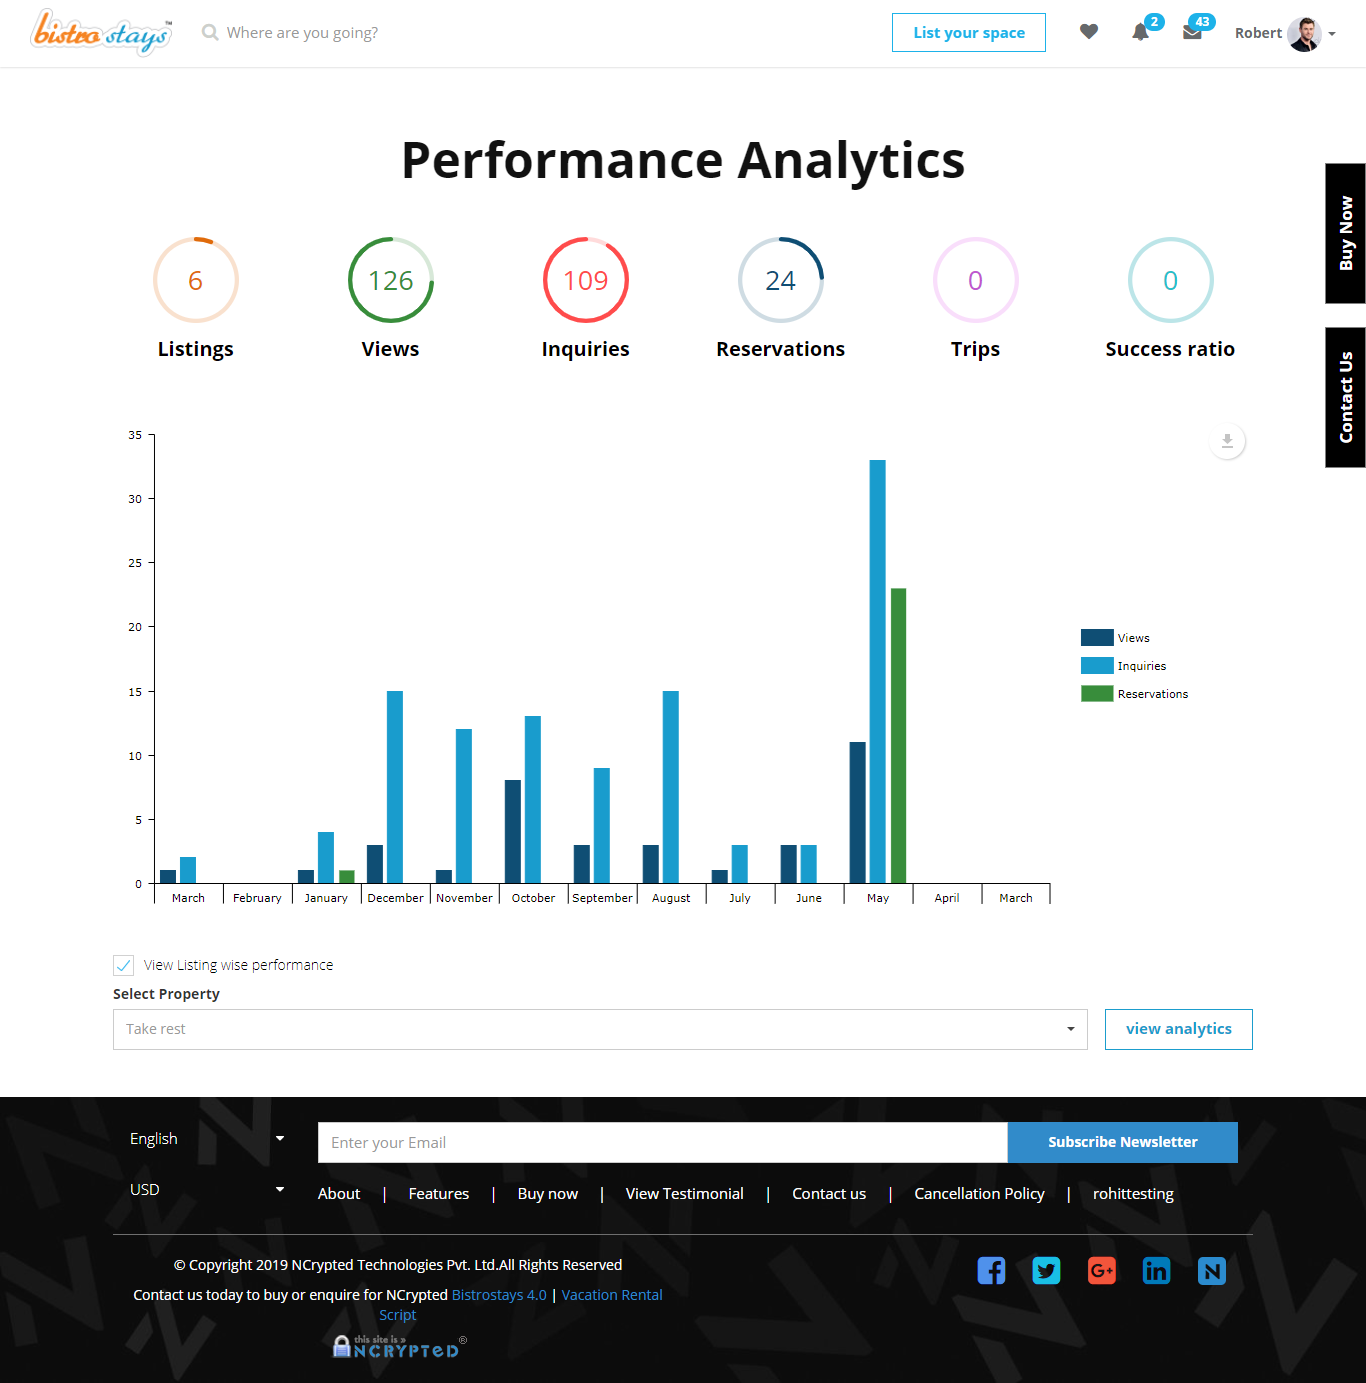 Listing Performance Analytics